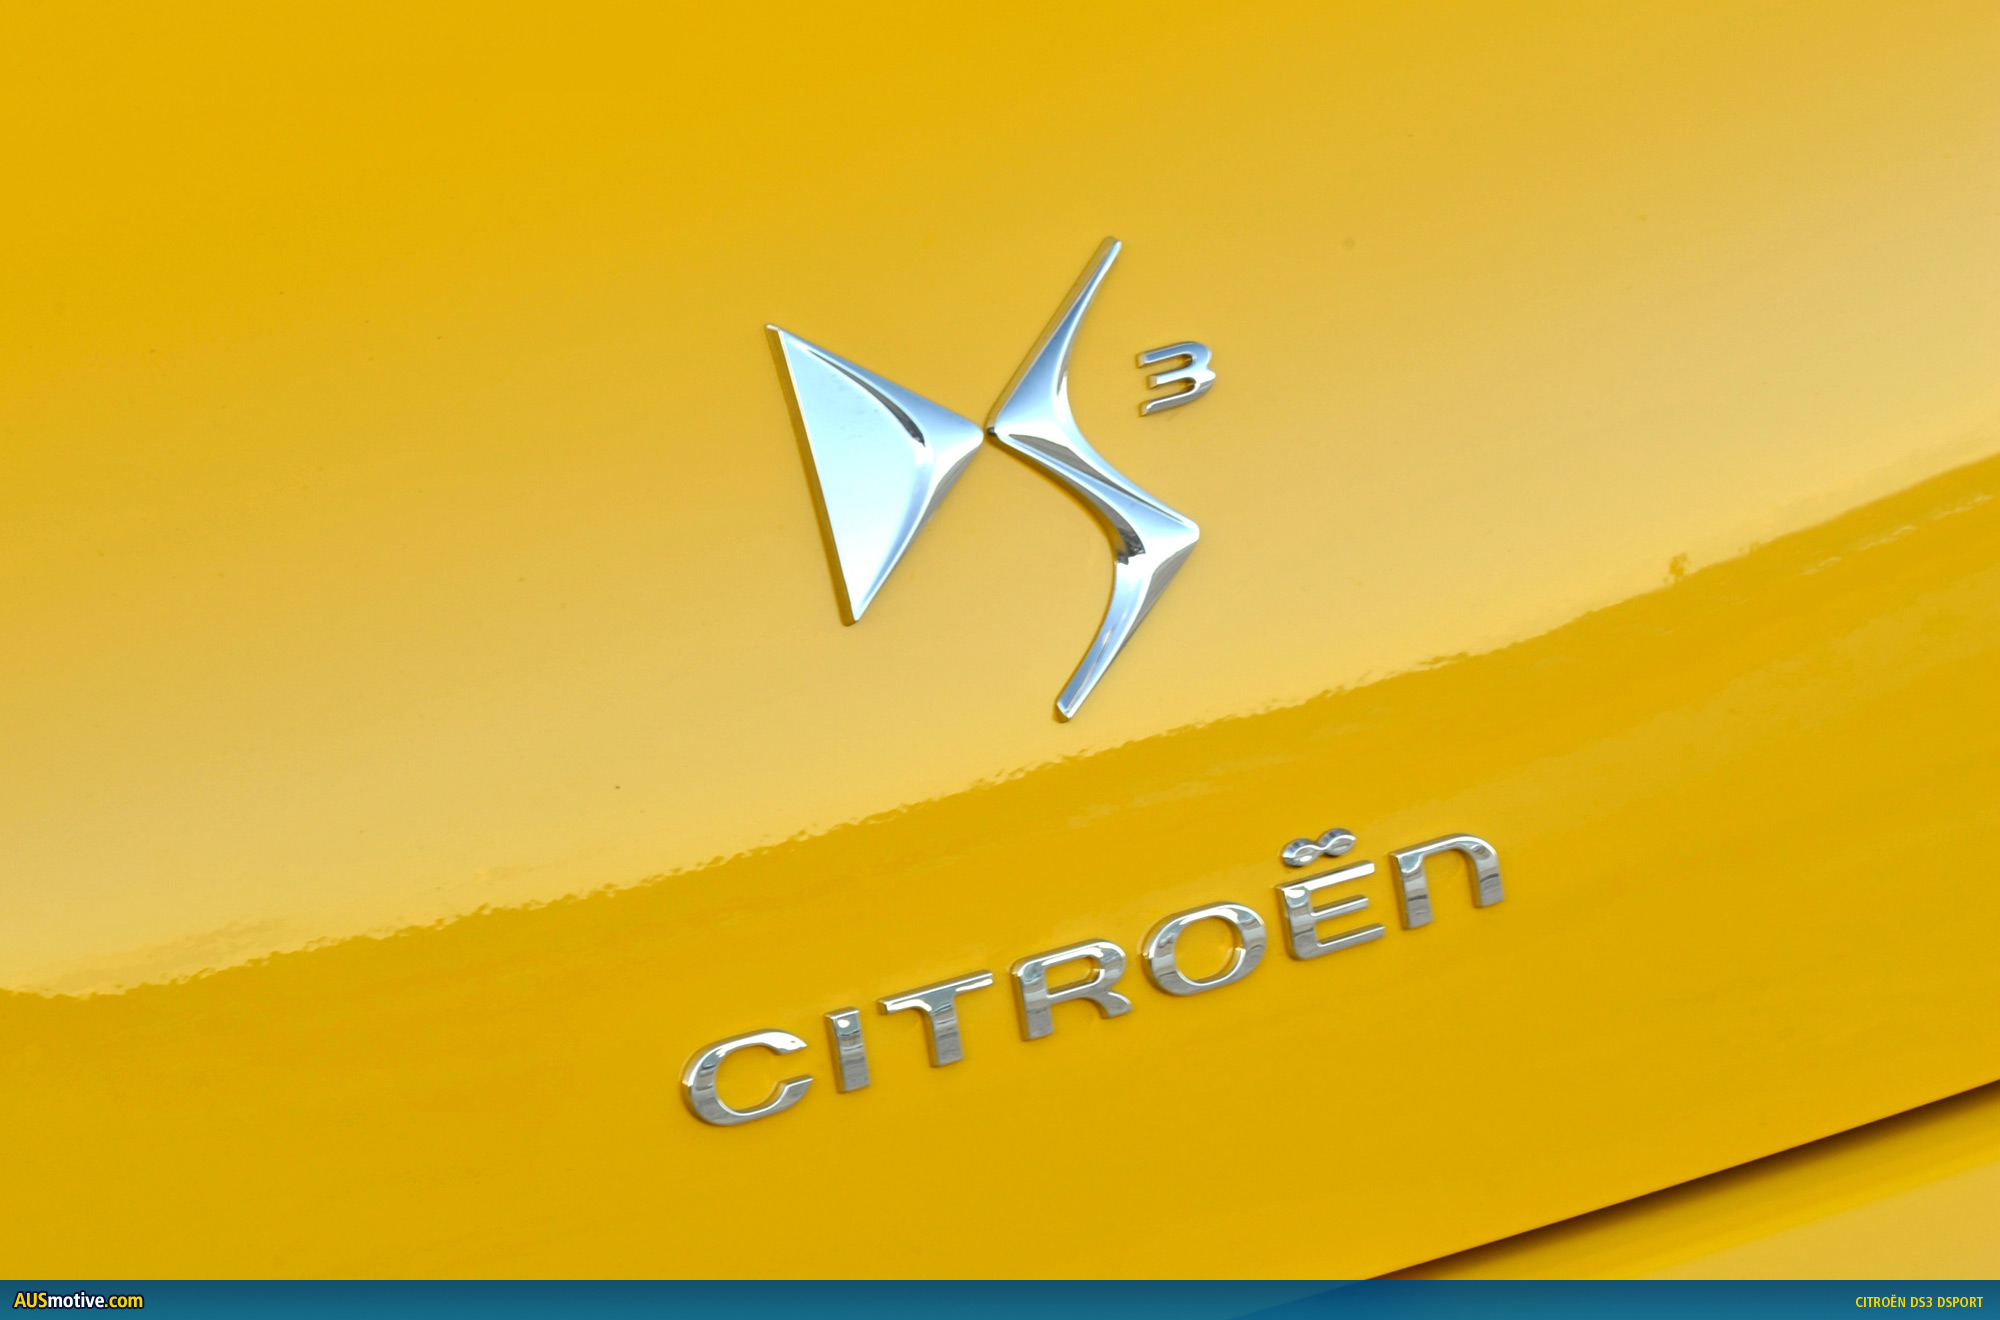 Citroën has redefined the